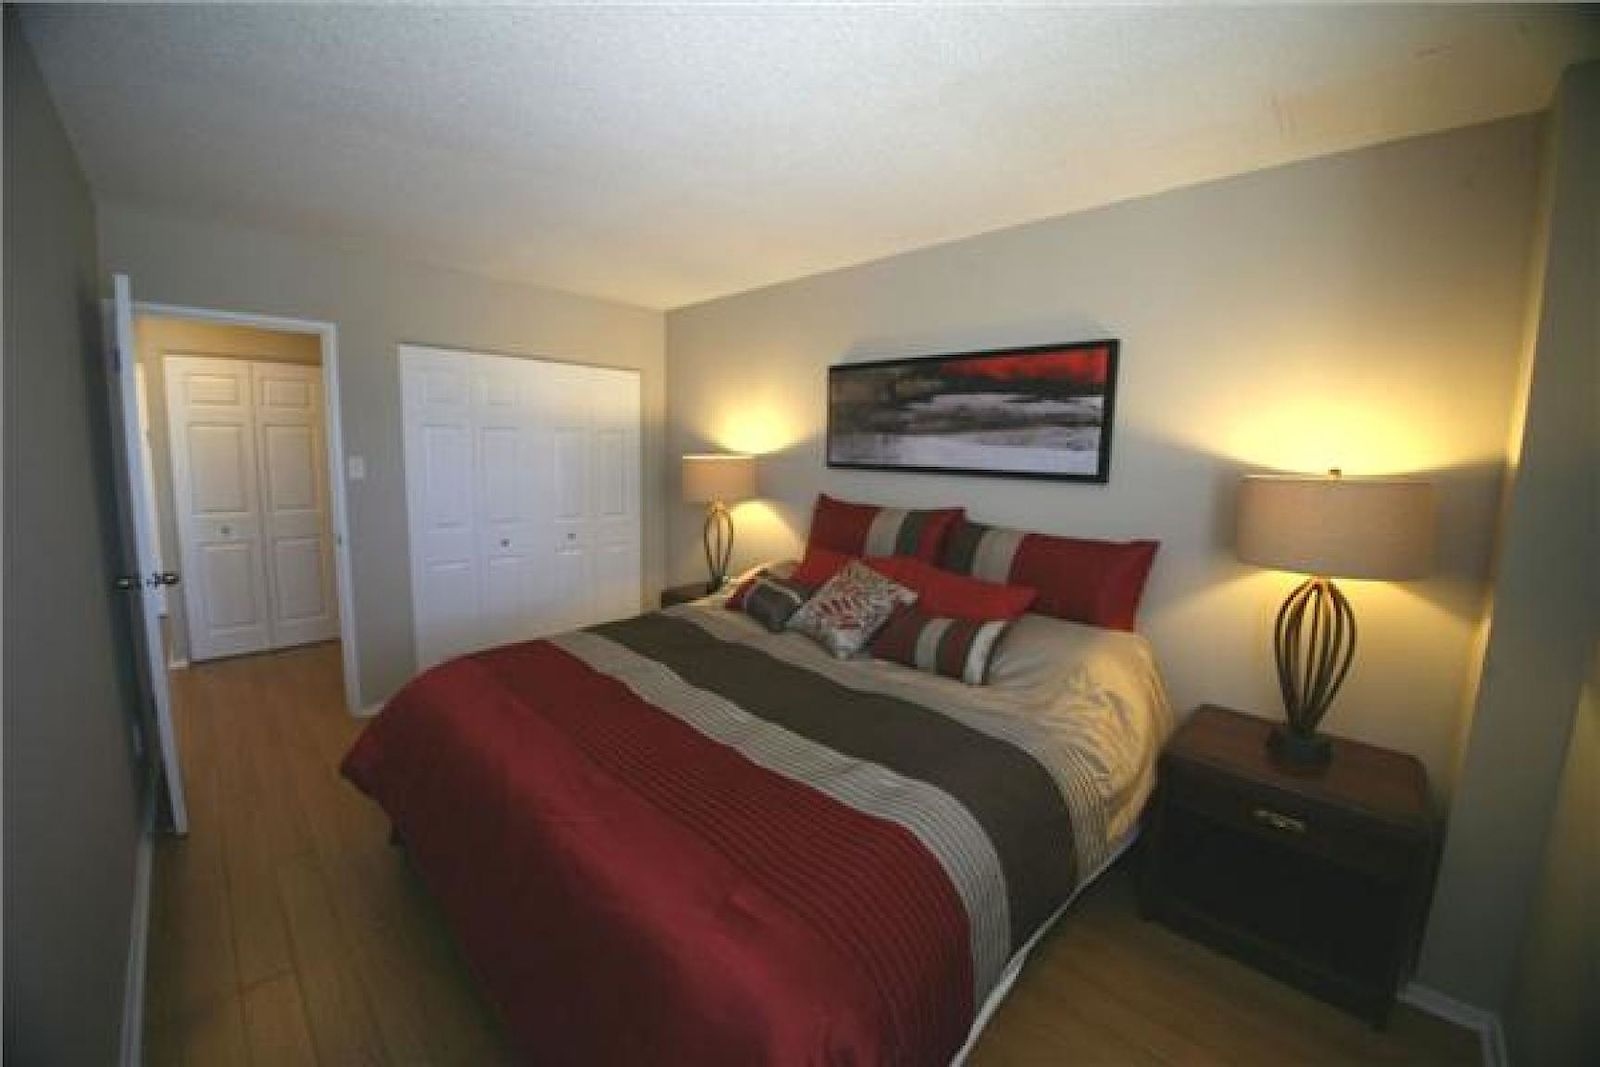 Ottawa Apartment For Rent Hawthorne Meadows Sheffield Glen St Laurent Towers Id 351338 Rentfaster Ca